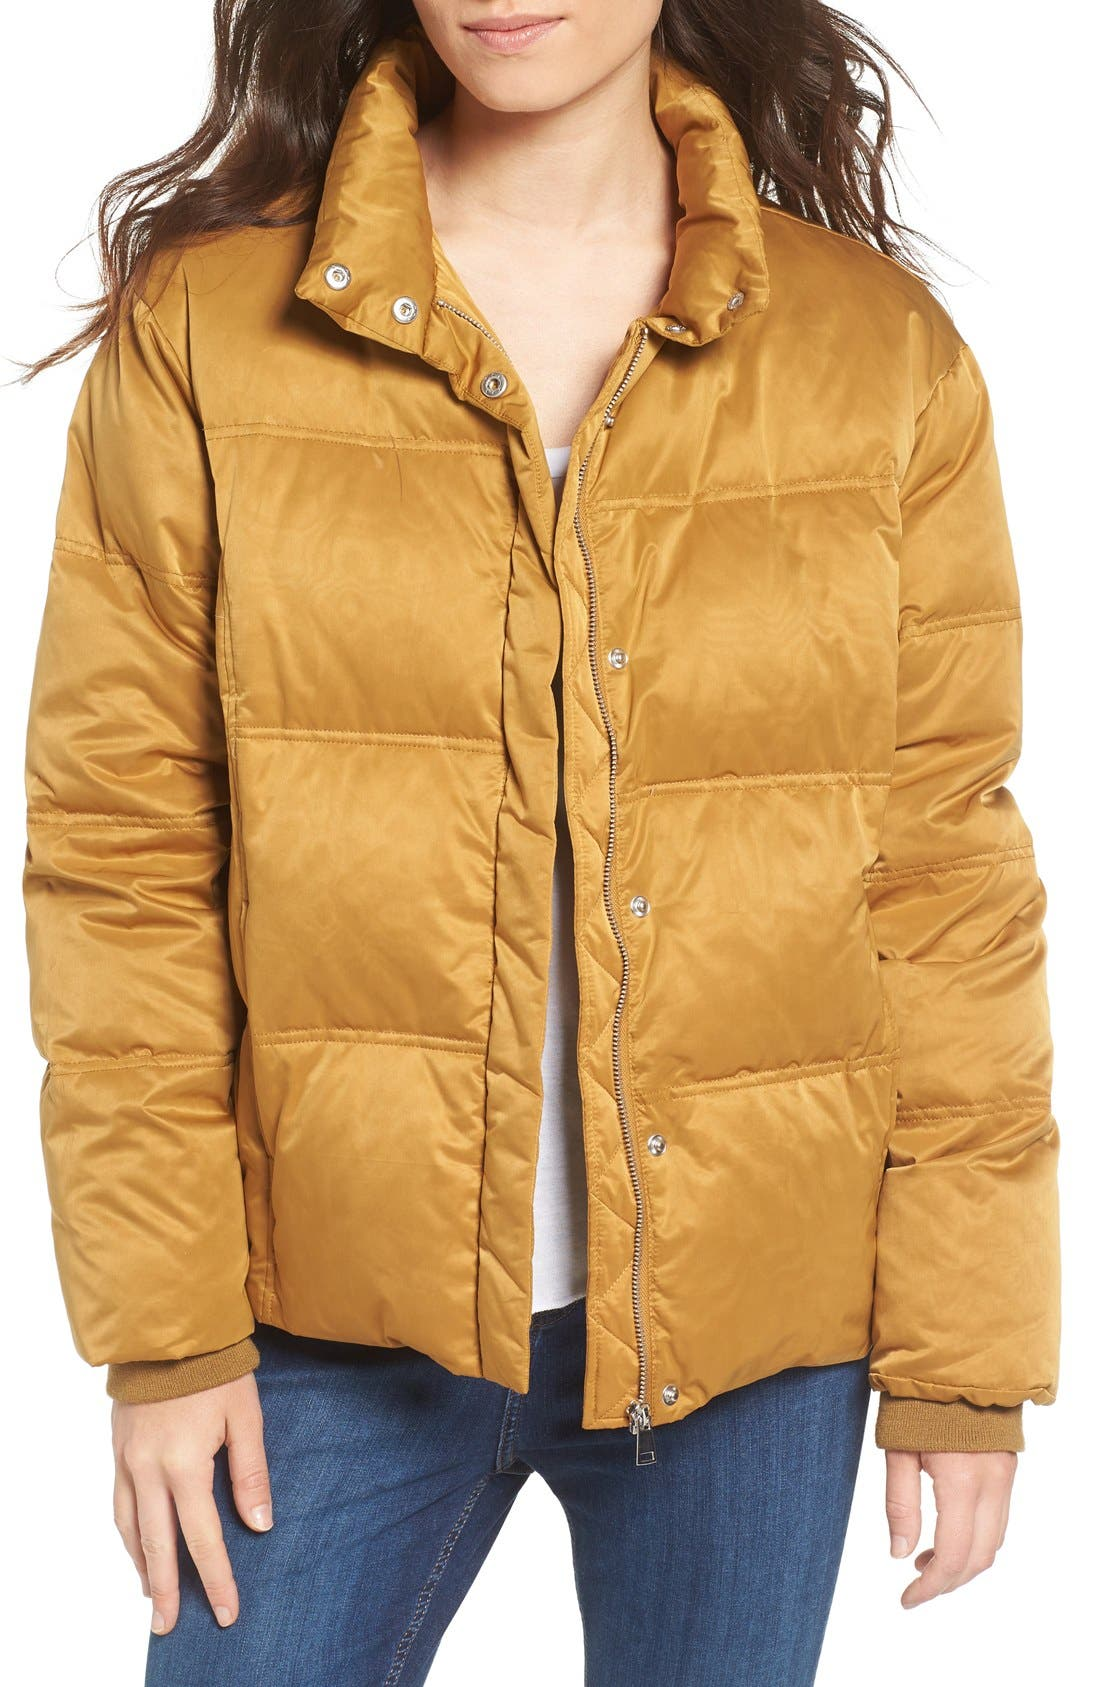 Alternate Image 1 Selected - Topshop Emily Puffer Jacket